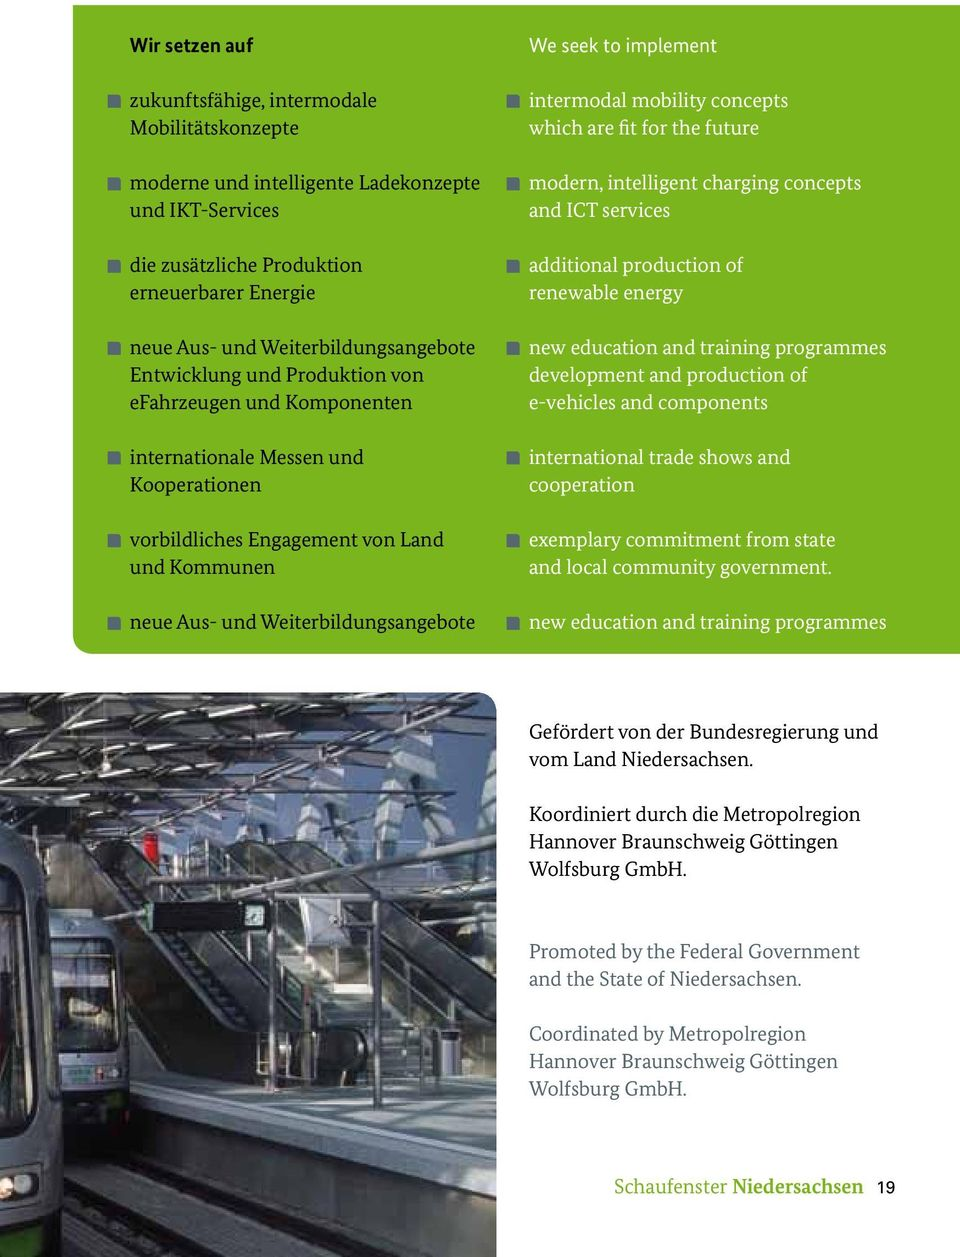 Weiterbildungsangebote We seek to implement intermodal mobility concepts which are fit for the future modern, intelligent charging concepts and ICT services additional production of renewable energy